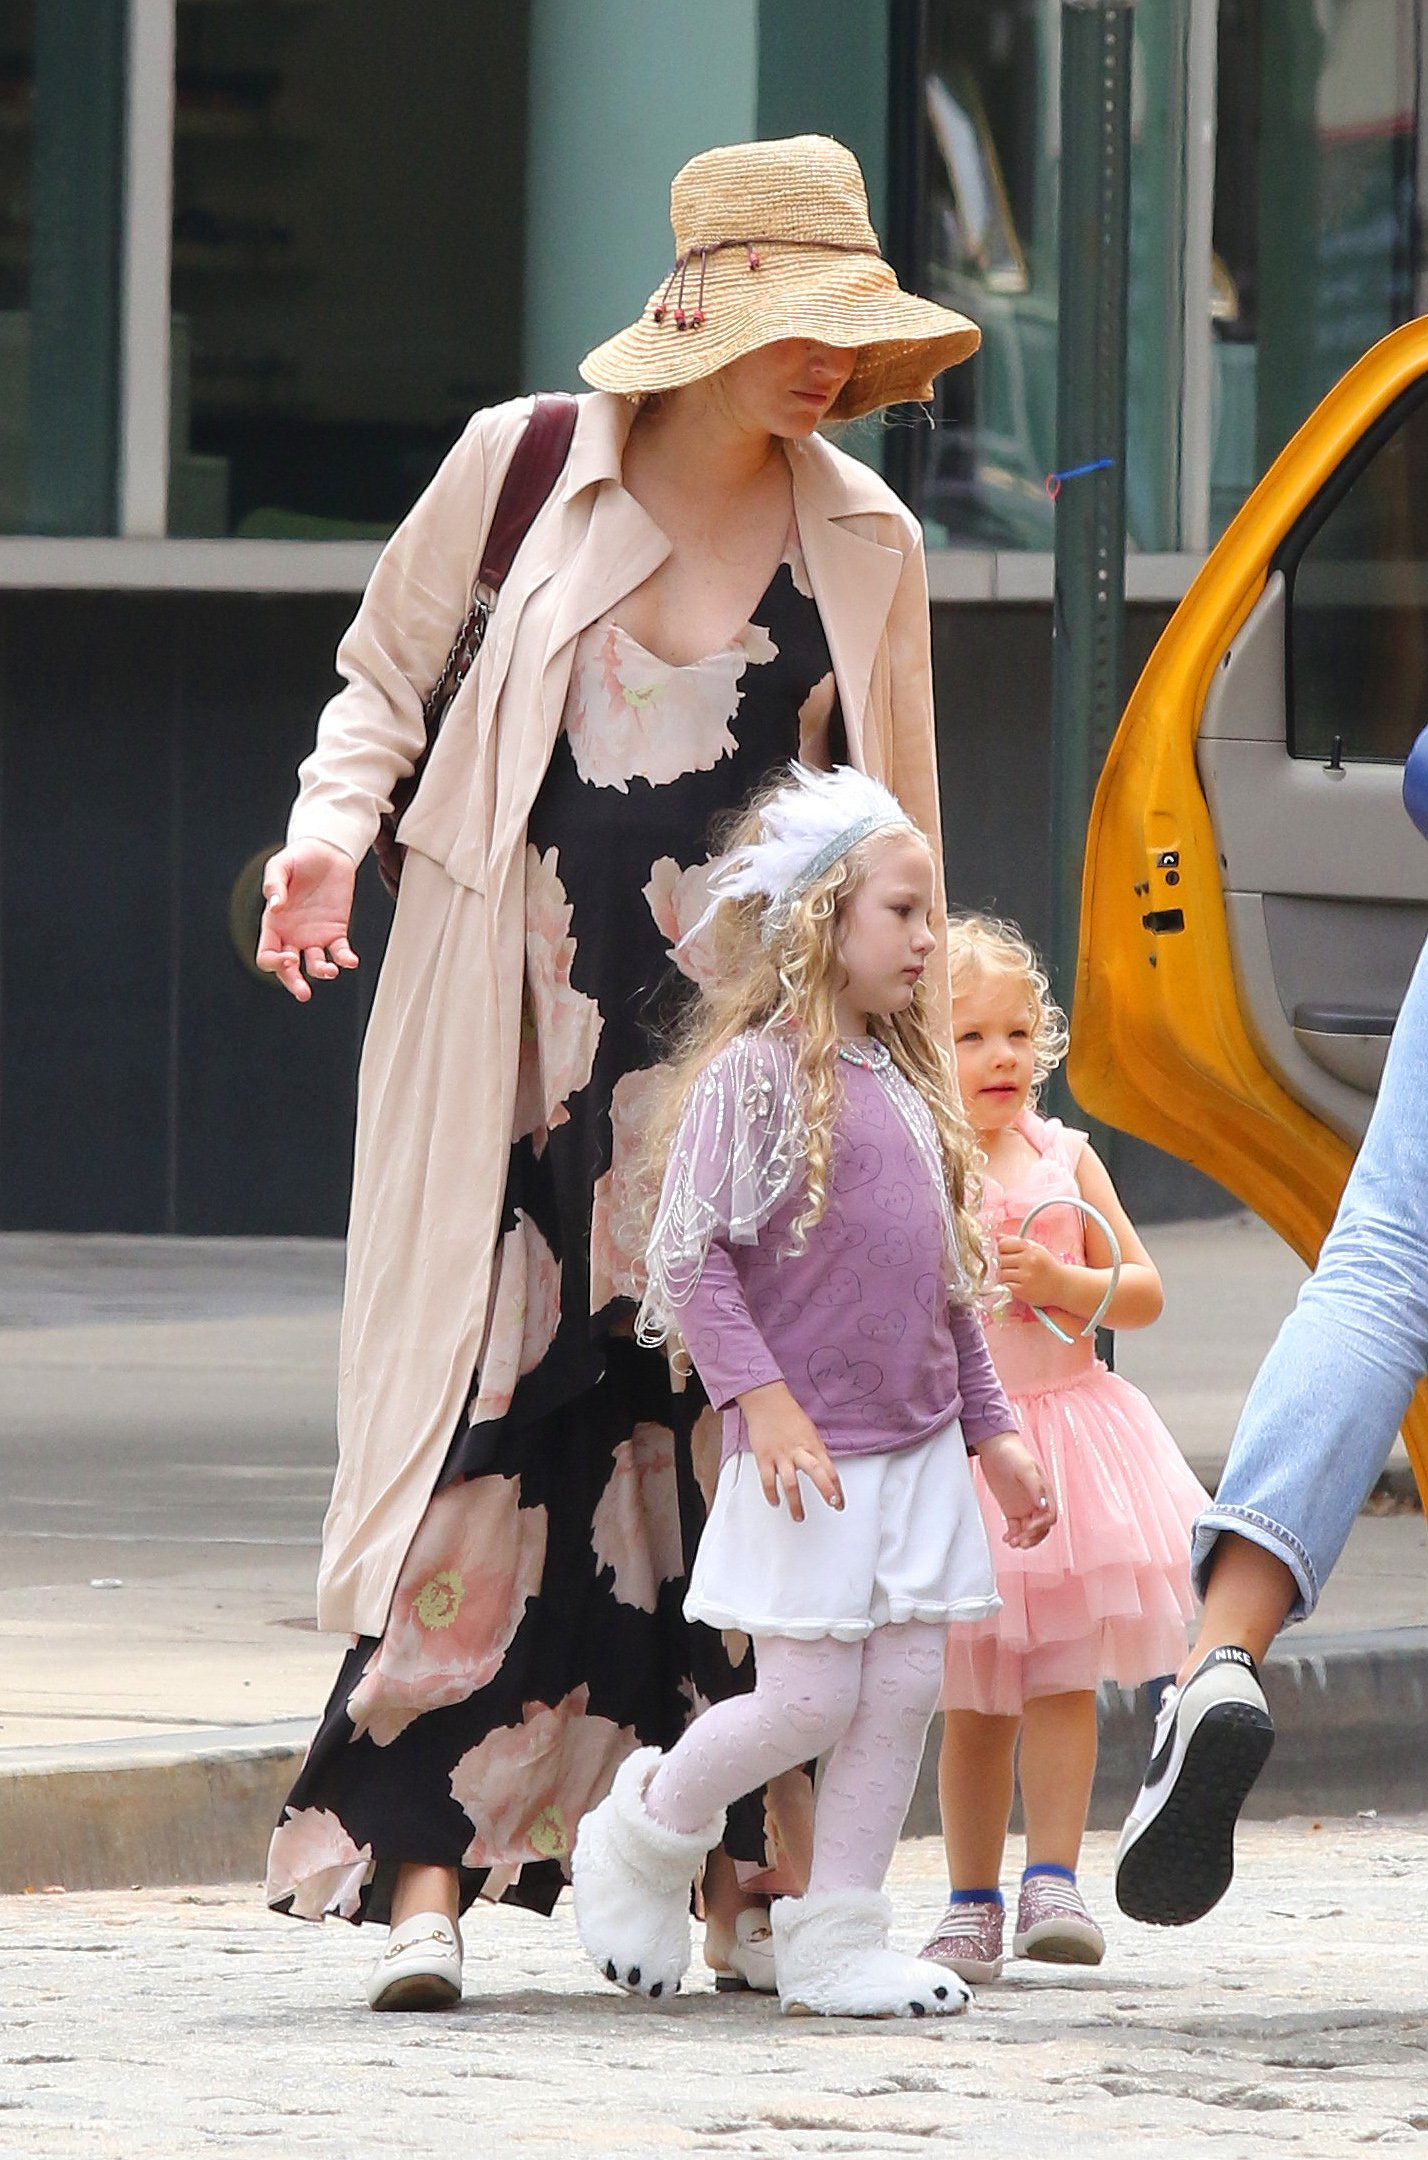 Blake Lively shows her baby bump in a floral dress while hailing a cab with her daughters, Inez and James in Downtown Manhattan.  Blake was all smiles as she was seen chatting with a friend while her daughters were dressed in costumes and played around her. 05 Aug 2019, Image: 462553615, License: Rights-managed, Restrictions: World Rights, Model Release: no, Credit line: Profimedia, Mega Agency